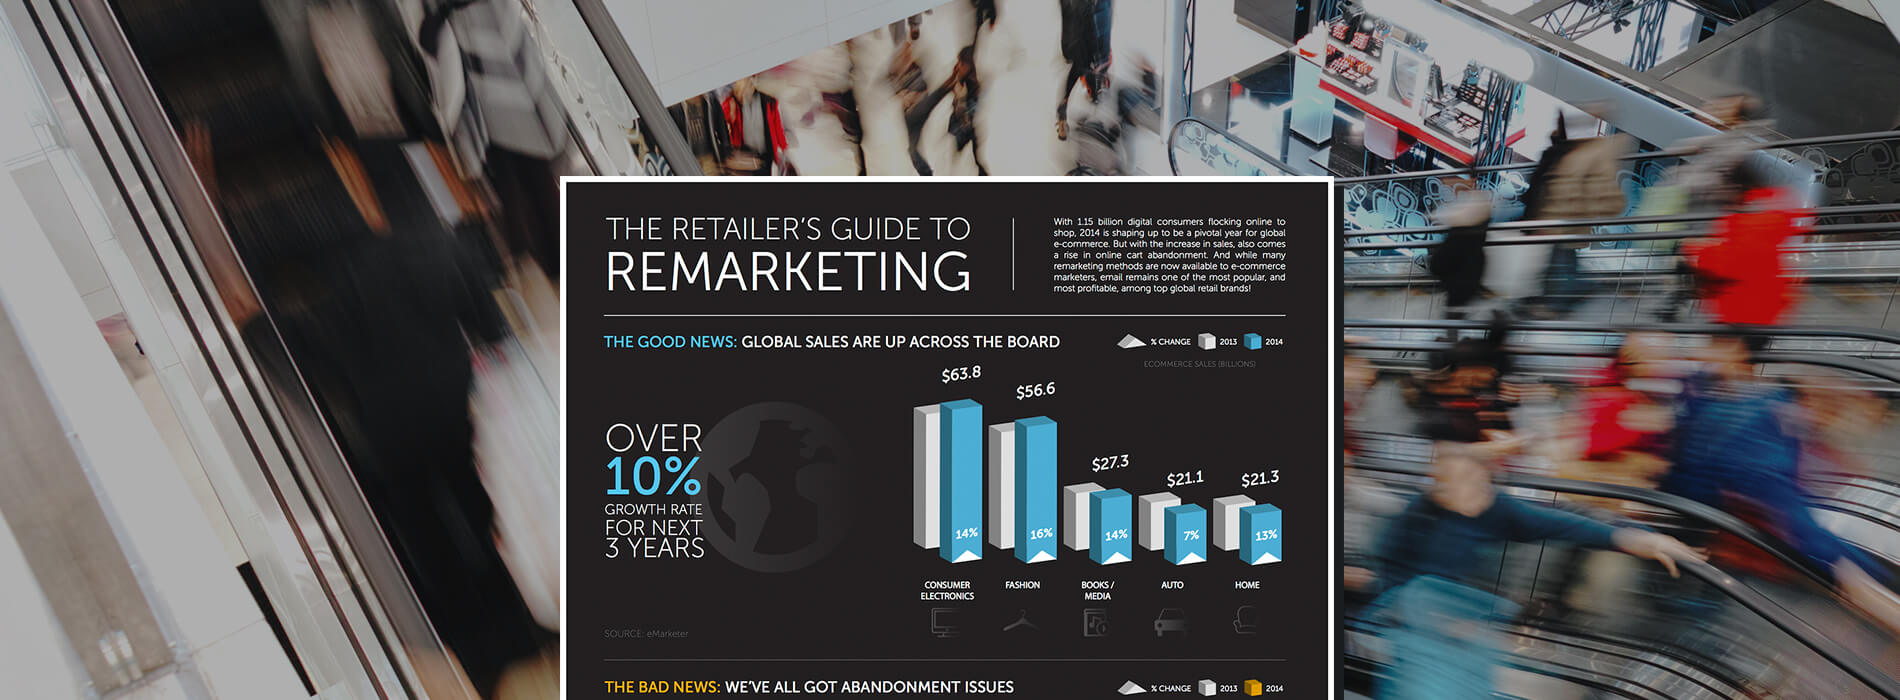 The Retailer's Guide to Remarketing